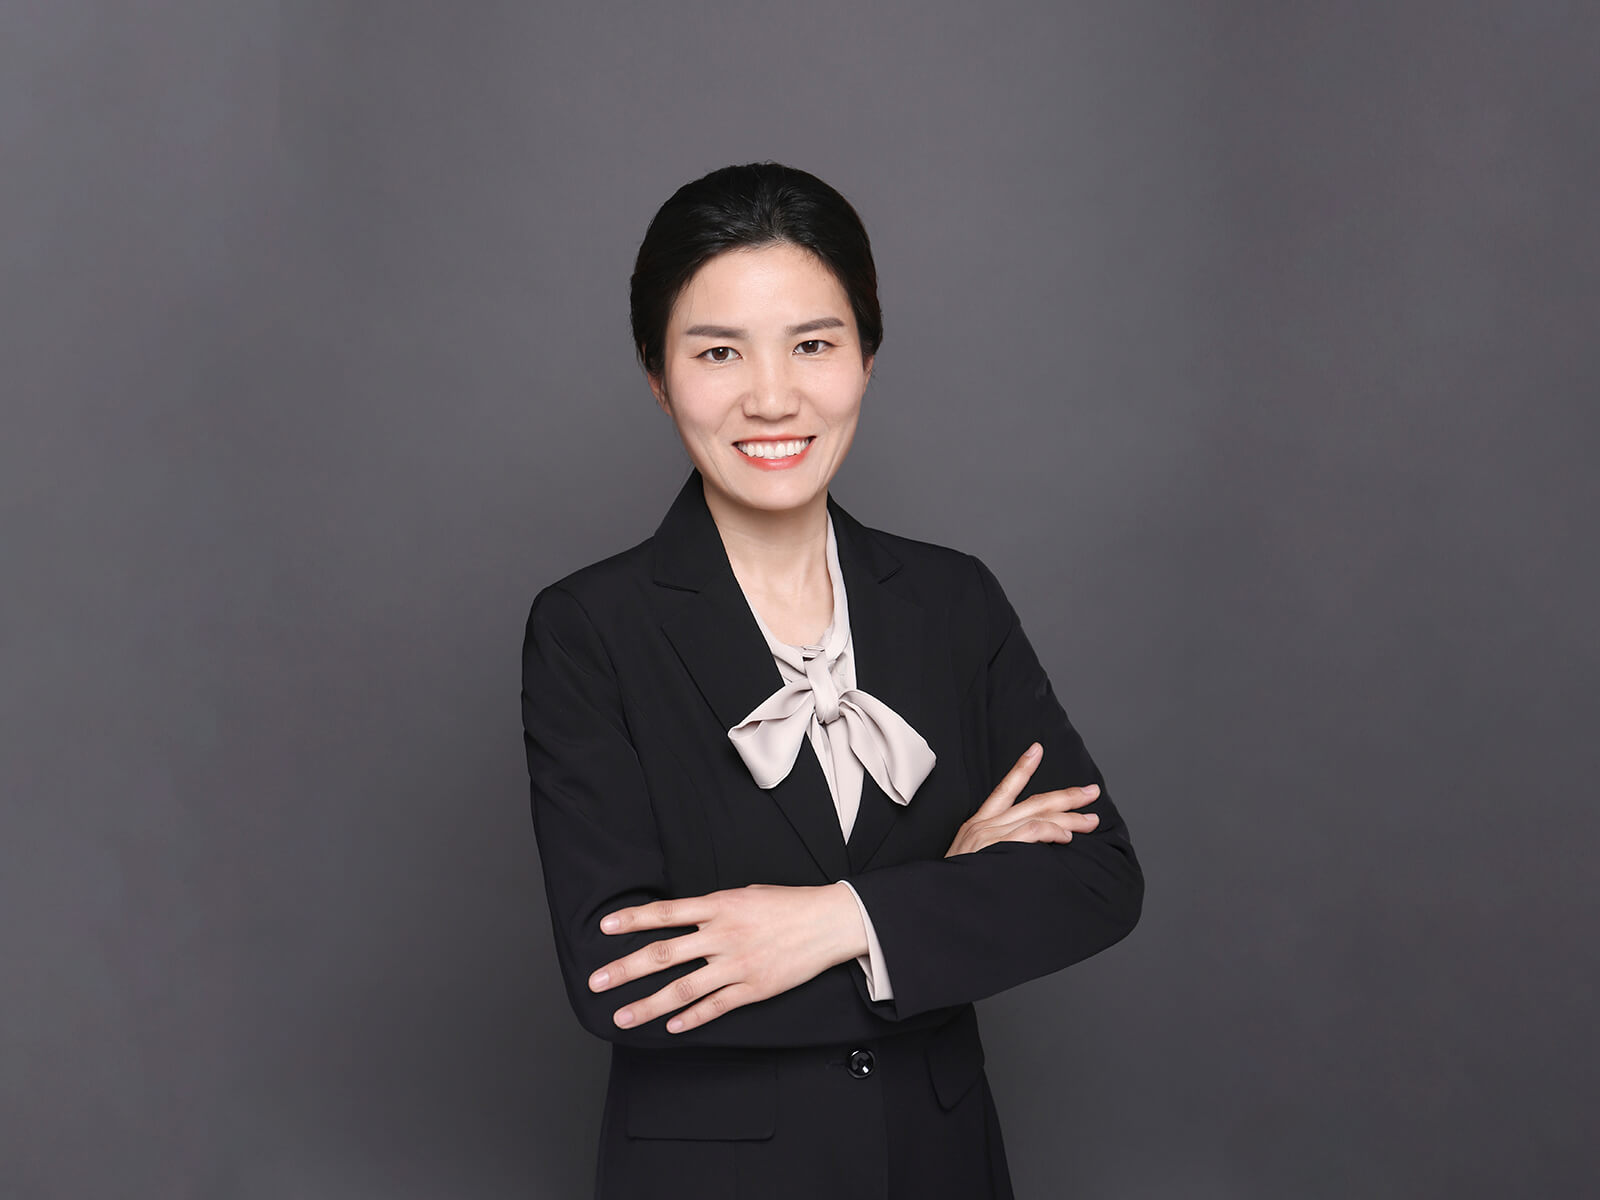 iSweetech Founder Angela Story